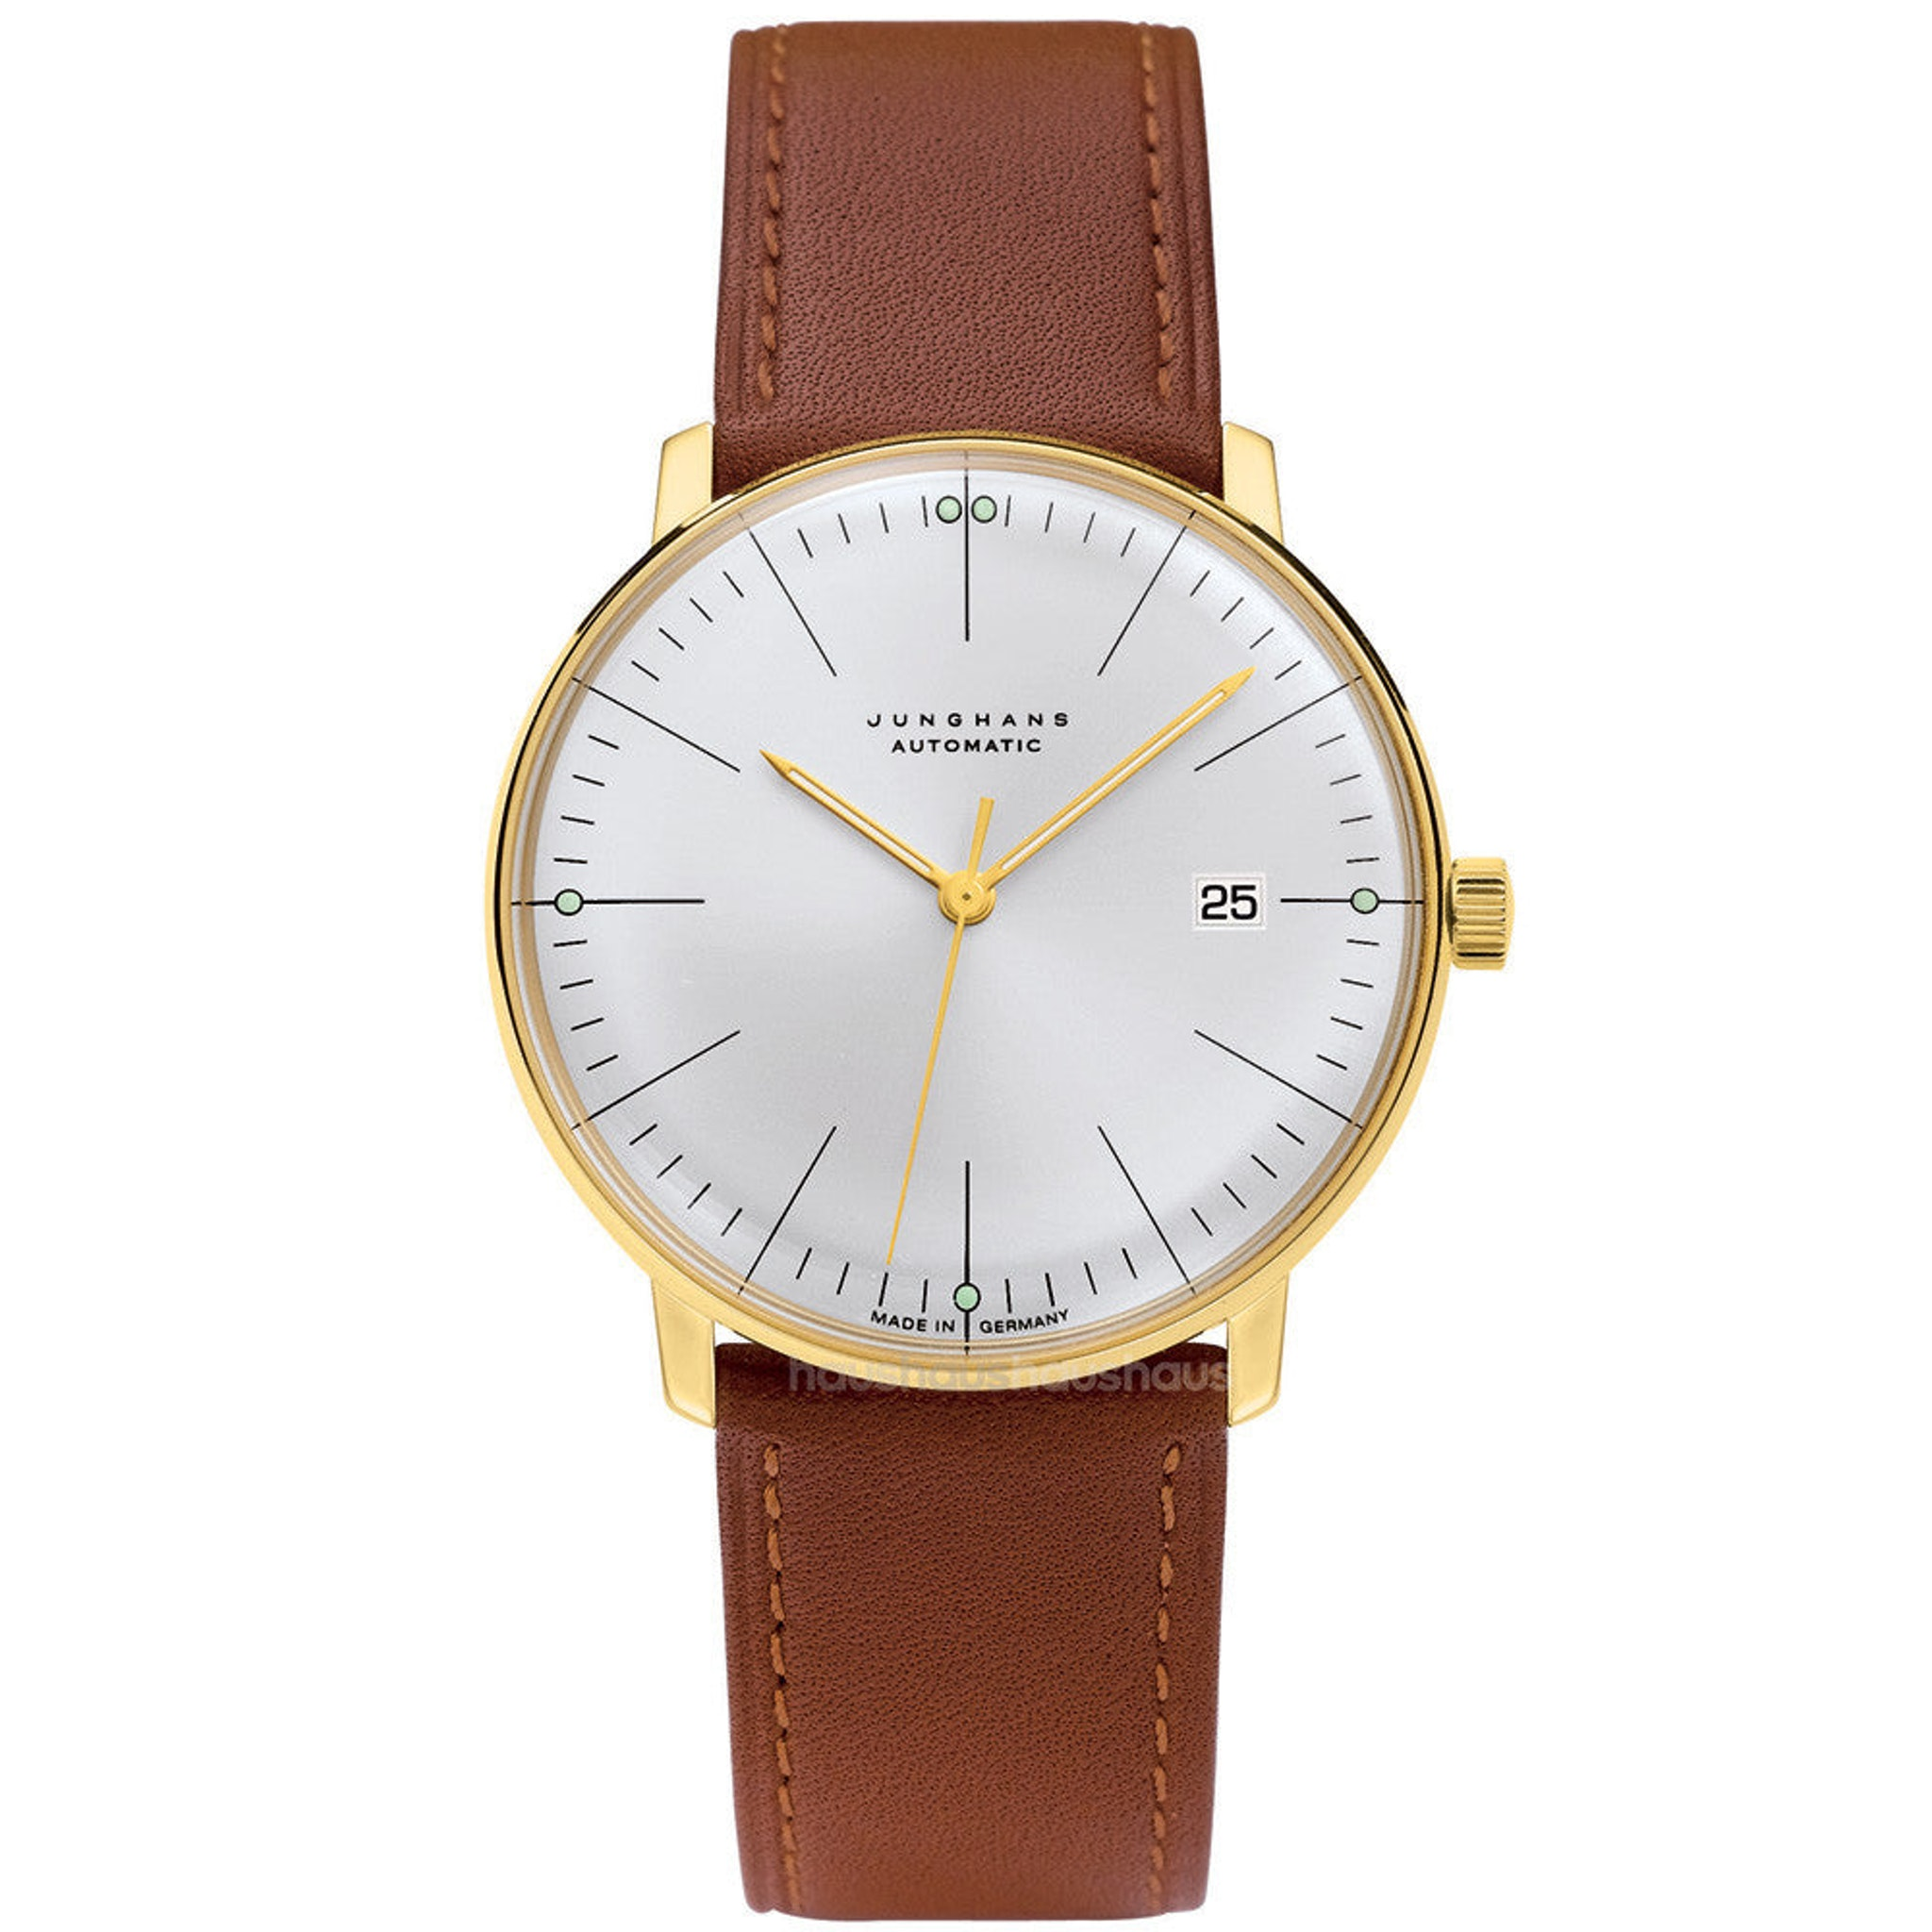 Max Bill 027/7700.00 Automatic watch by Junghans